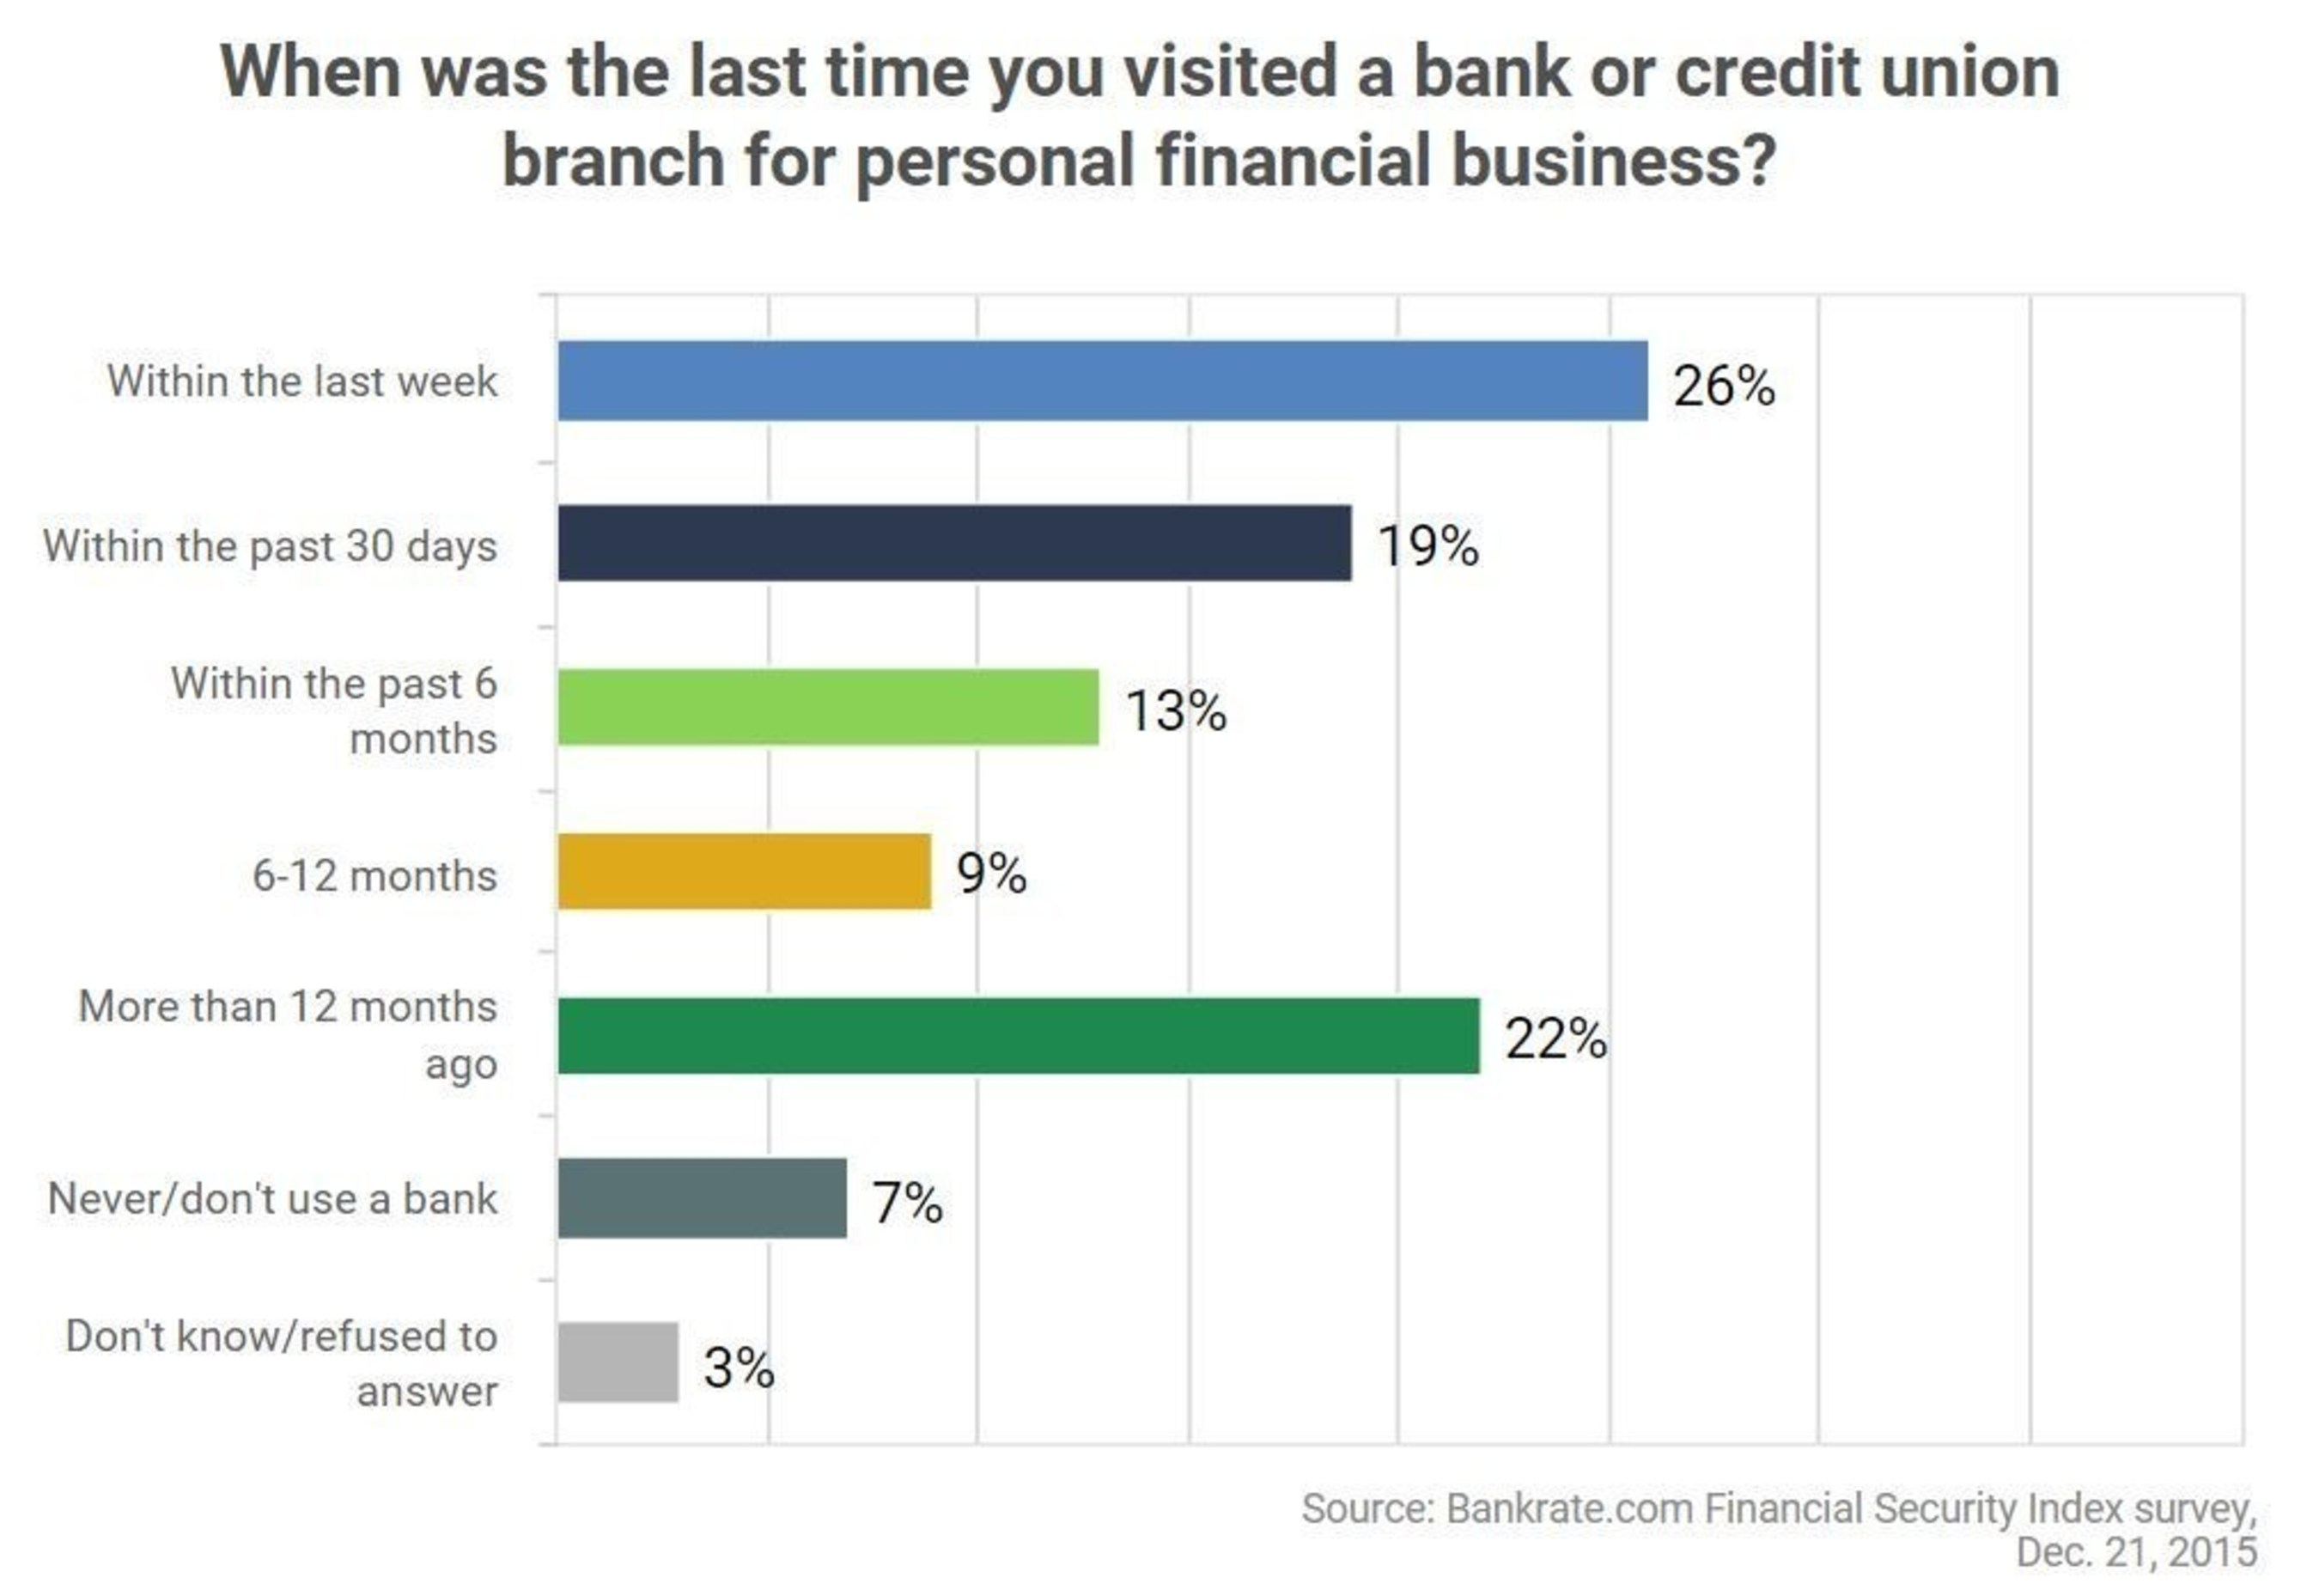 Nearly Four in 10 Americans Haven't Visited Bank Branch in Six Months